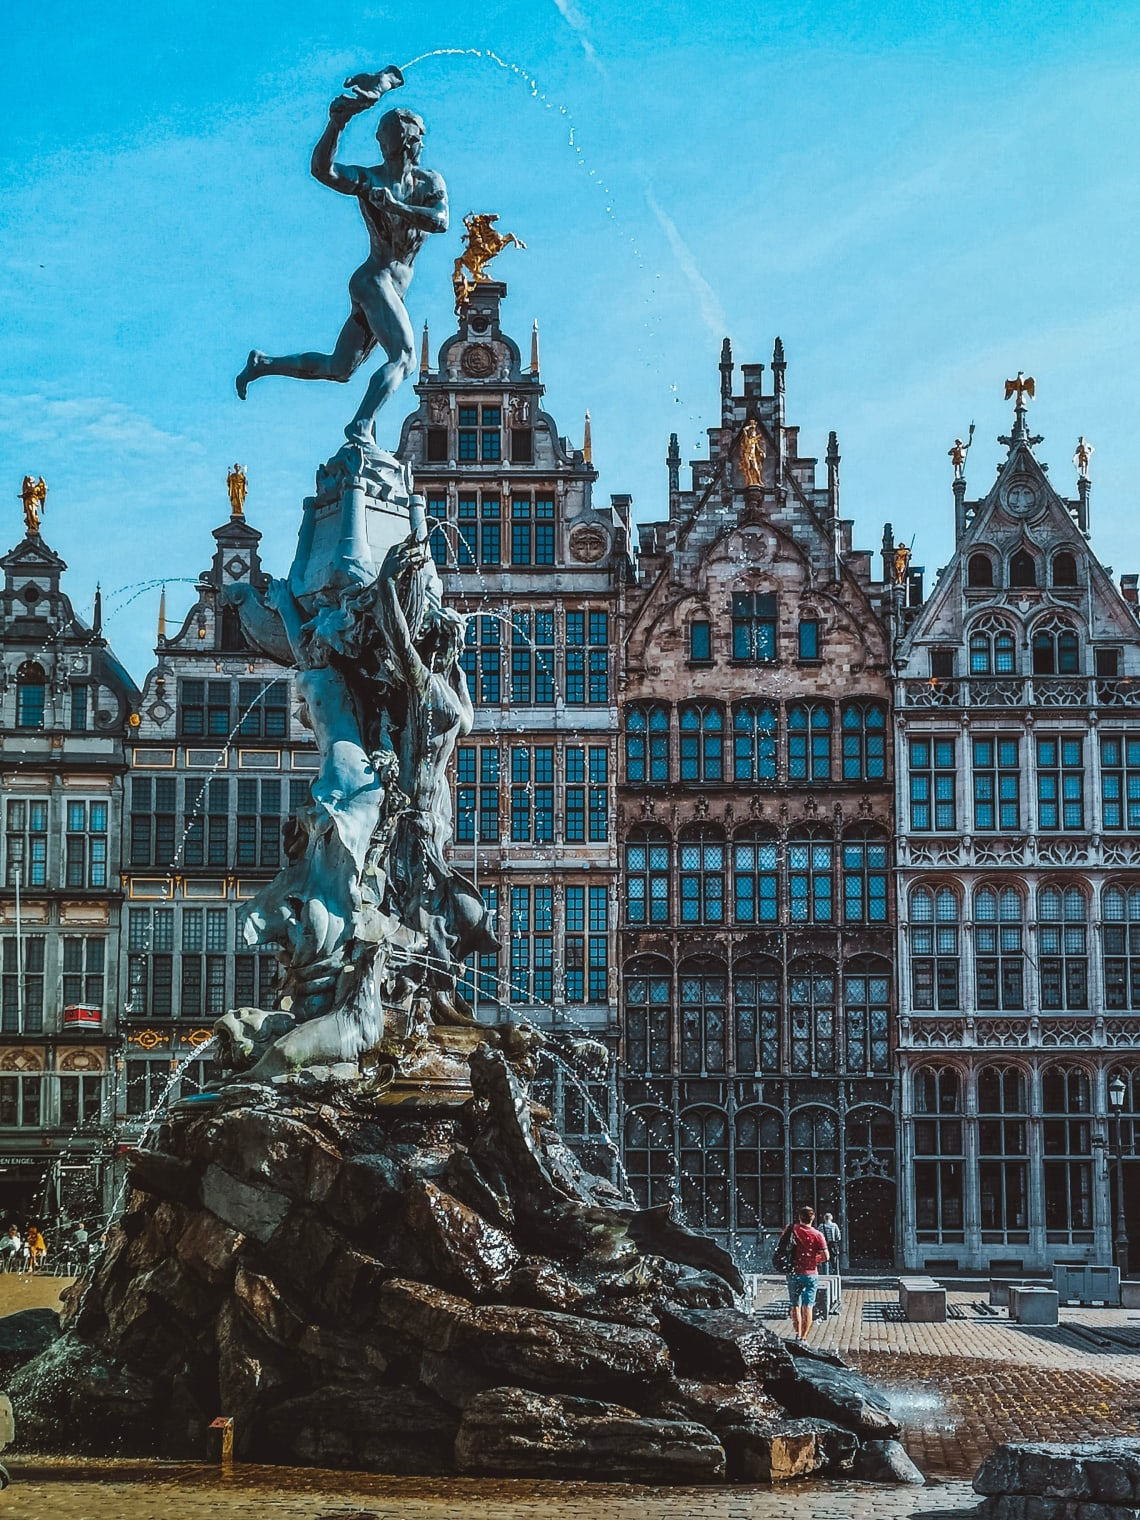 Traveling in Brussels, Belgium